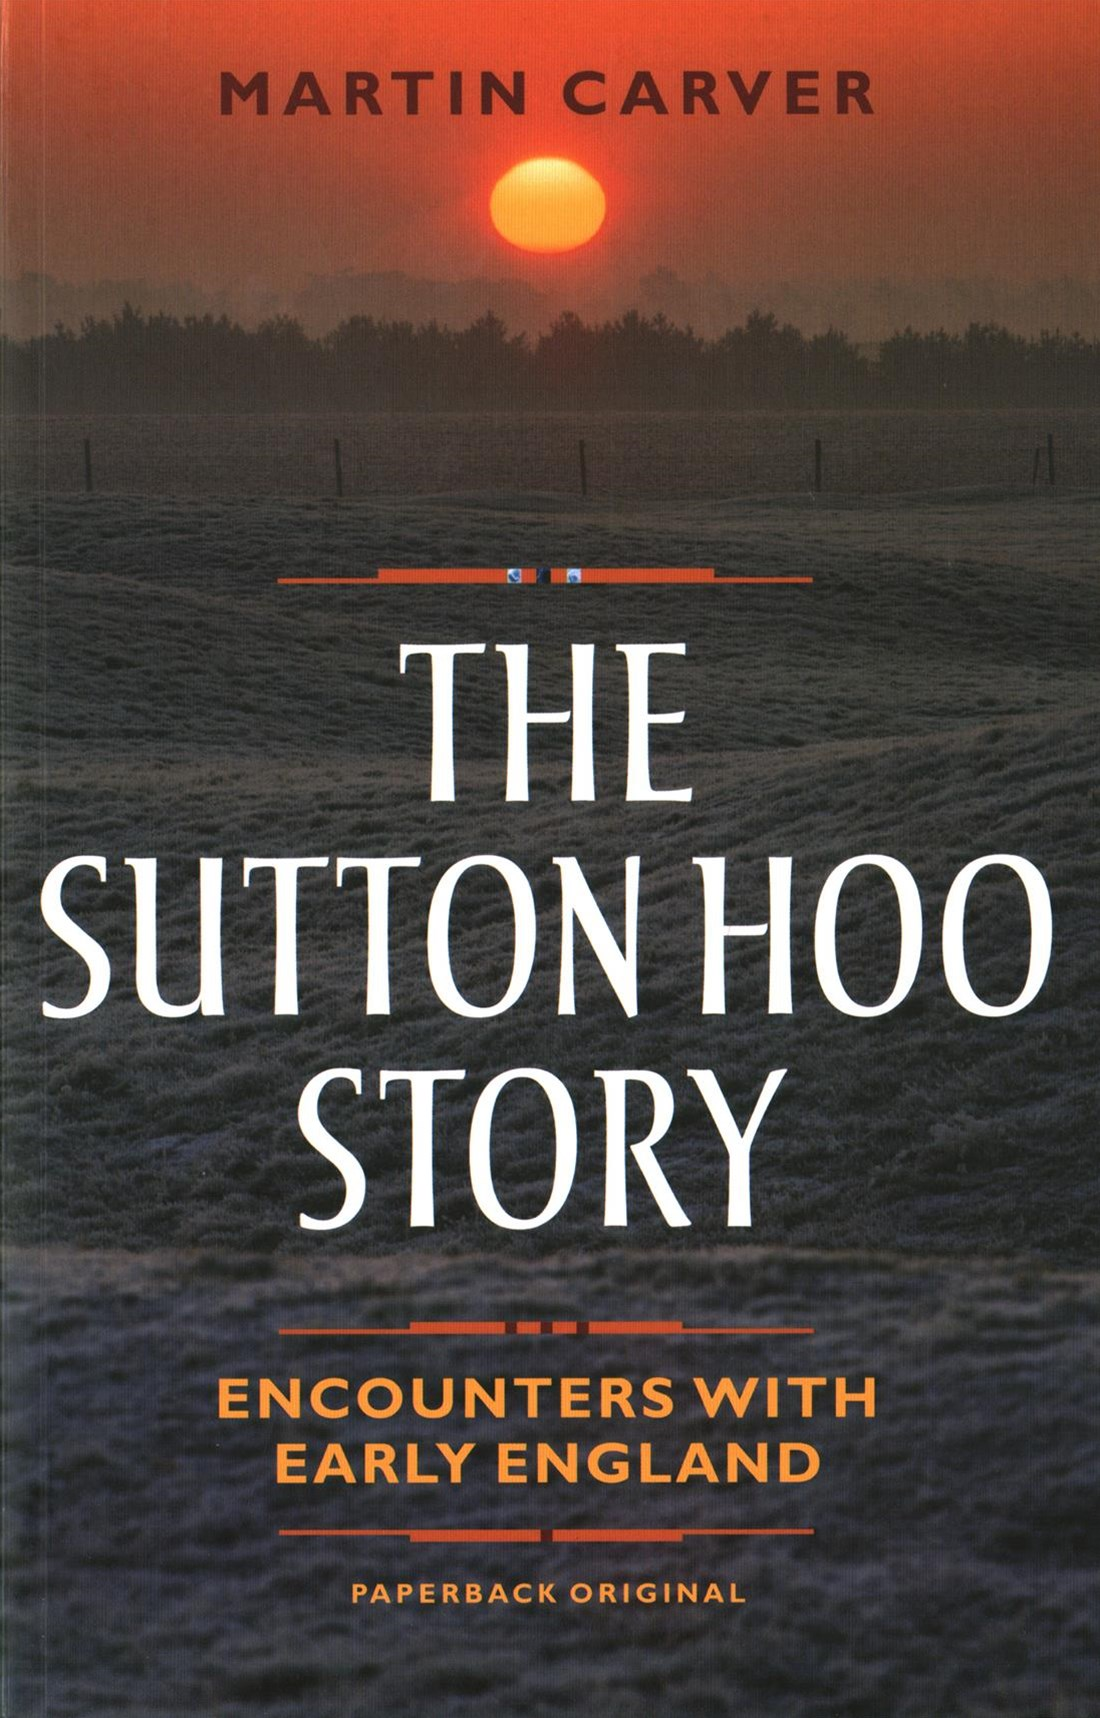 Sutton Hoo Story - Encounters with Early England